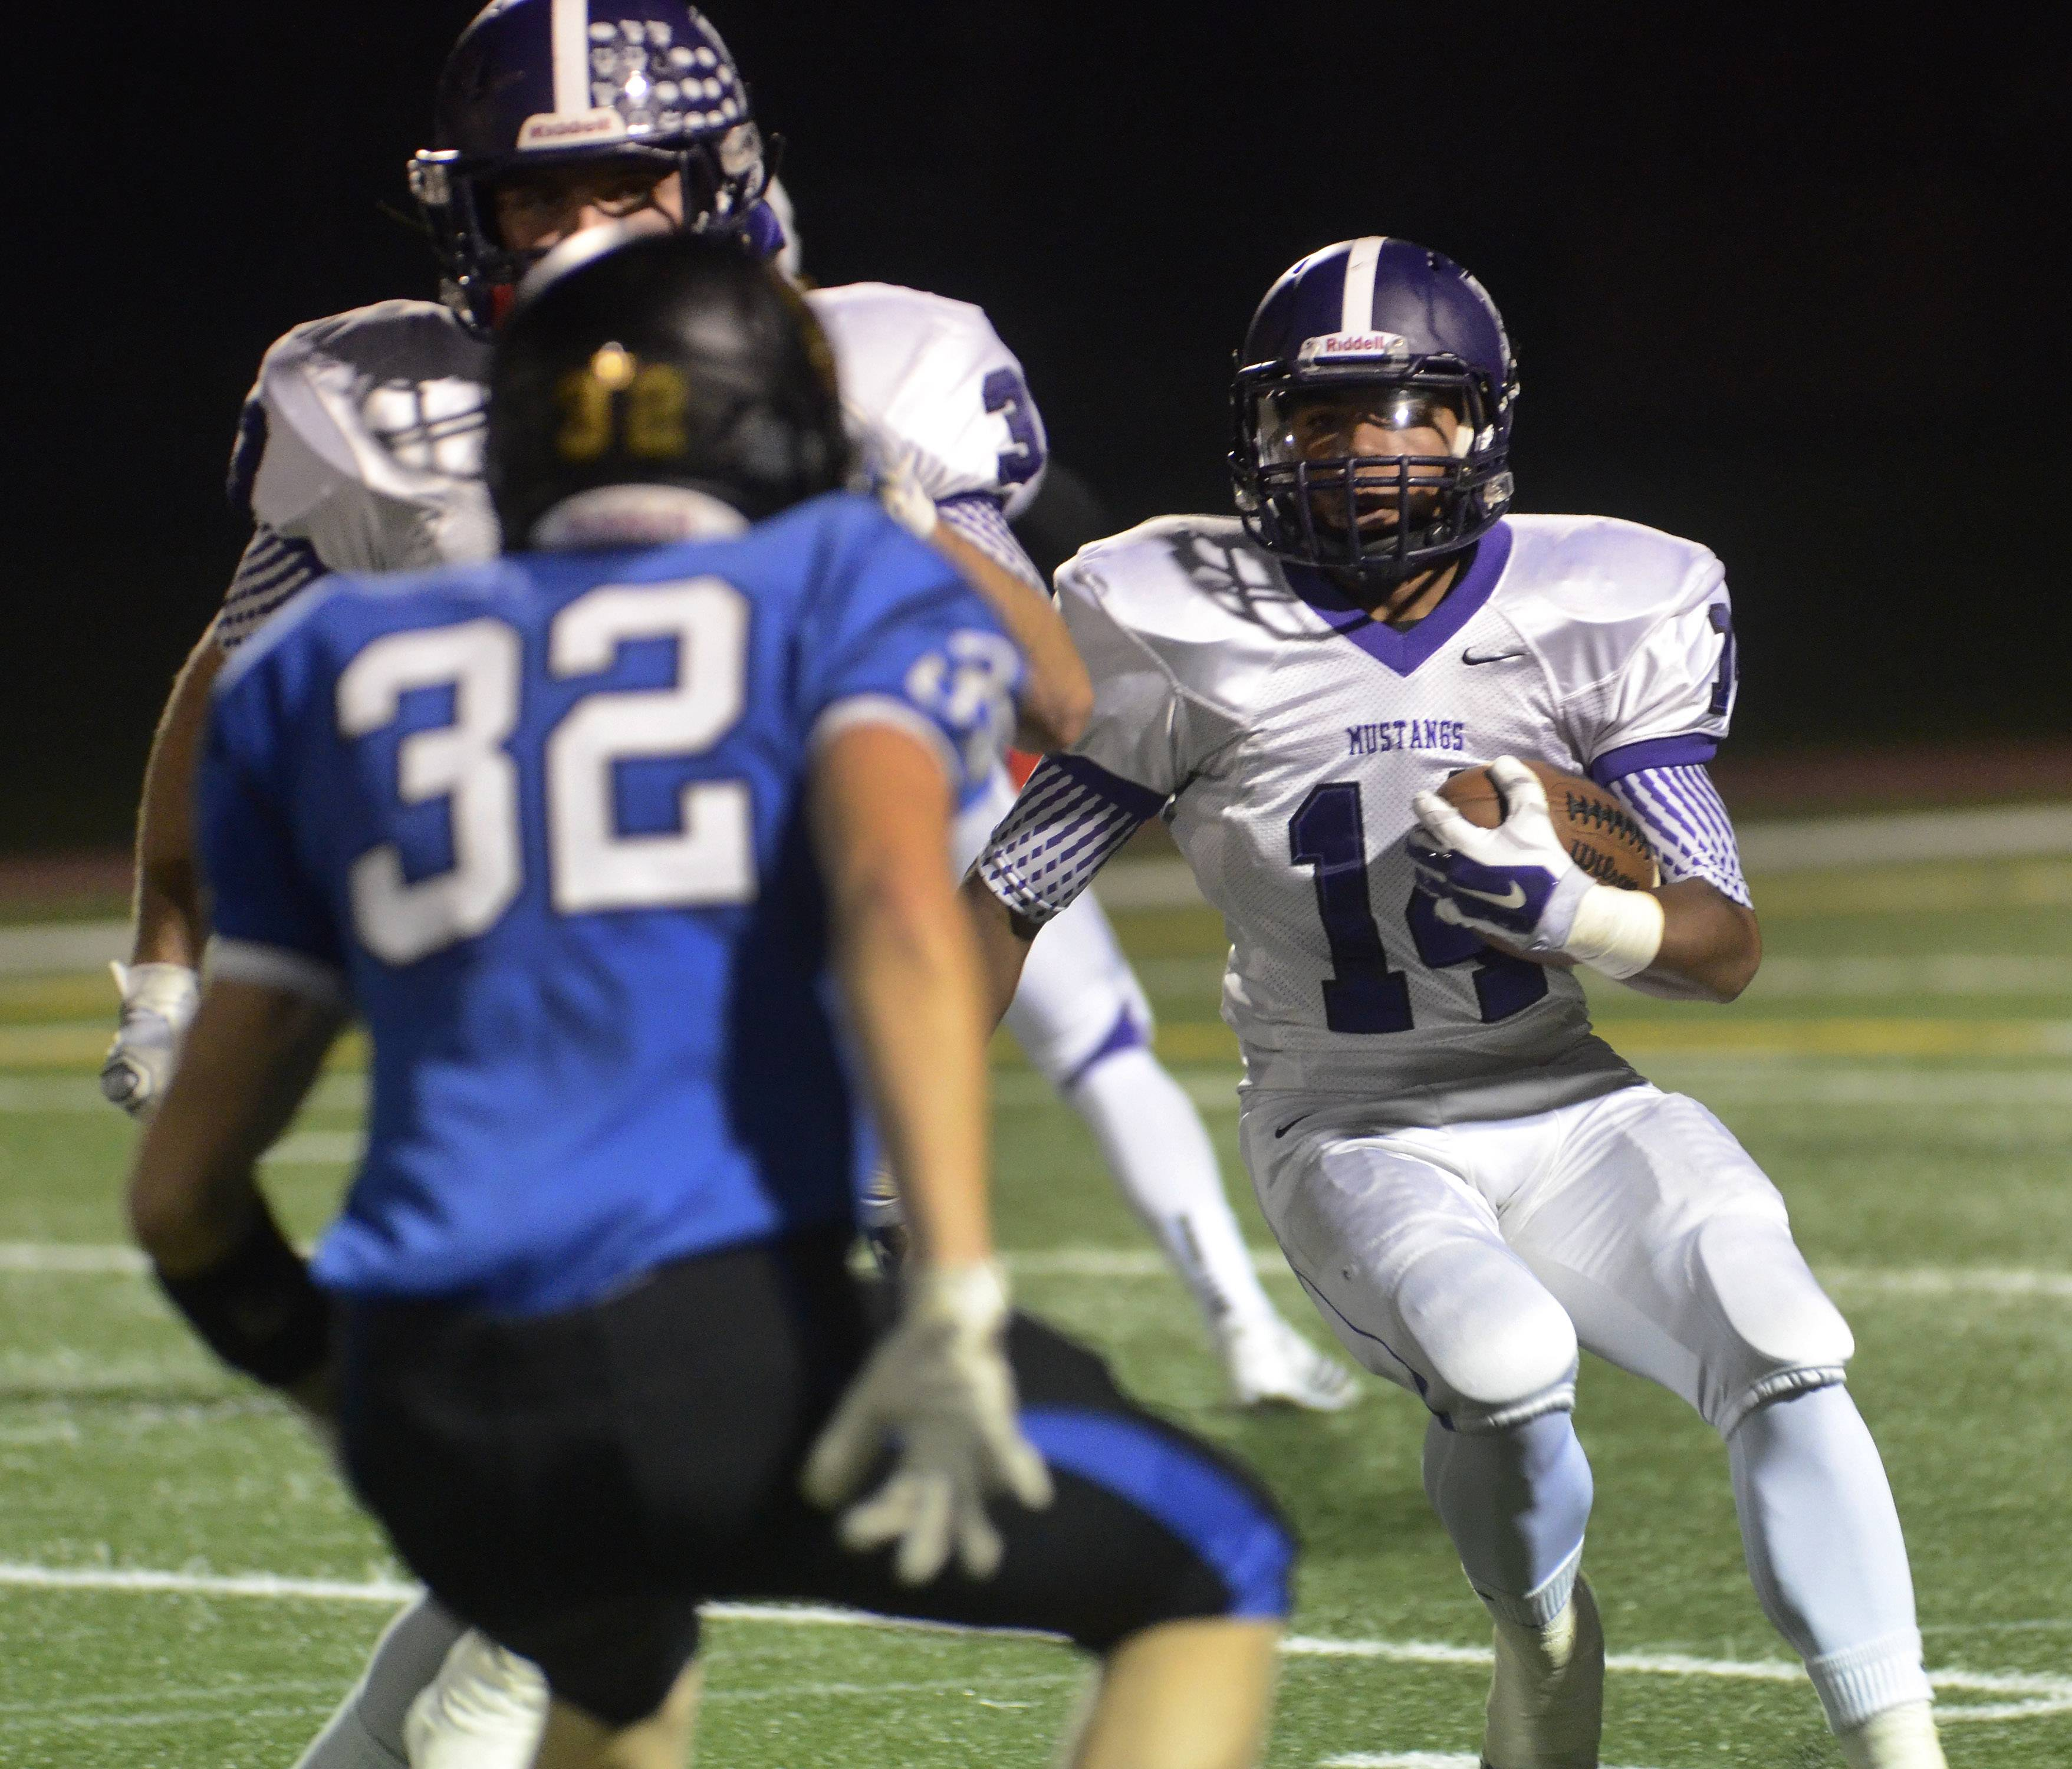 Devante Amos of Rolling Meadows goes on a run.